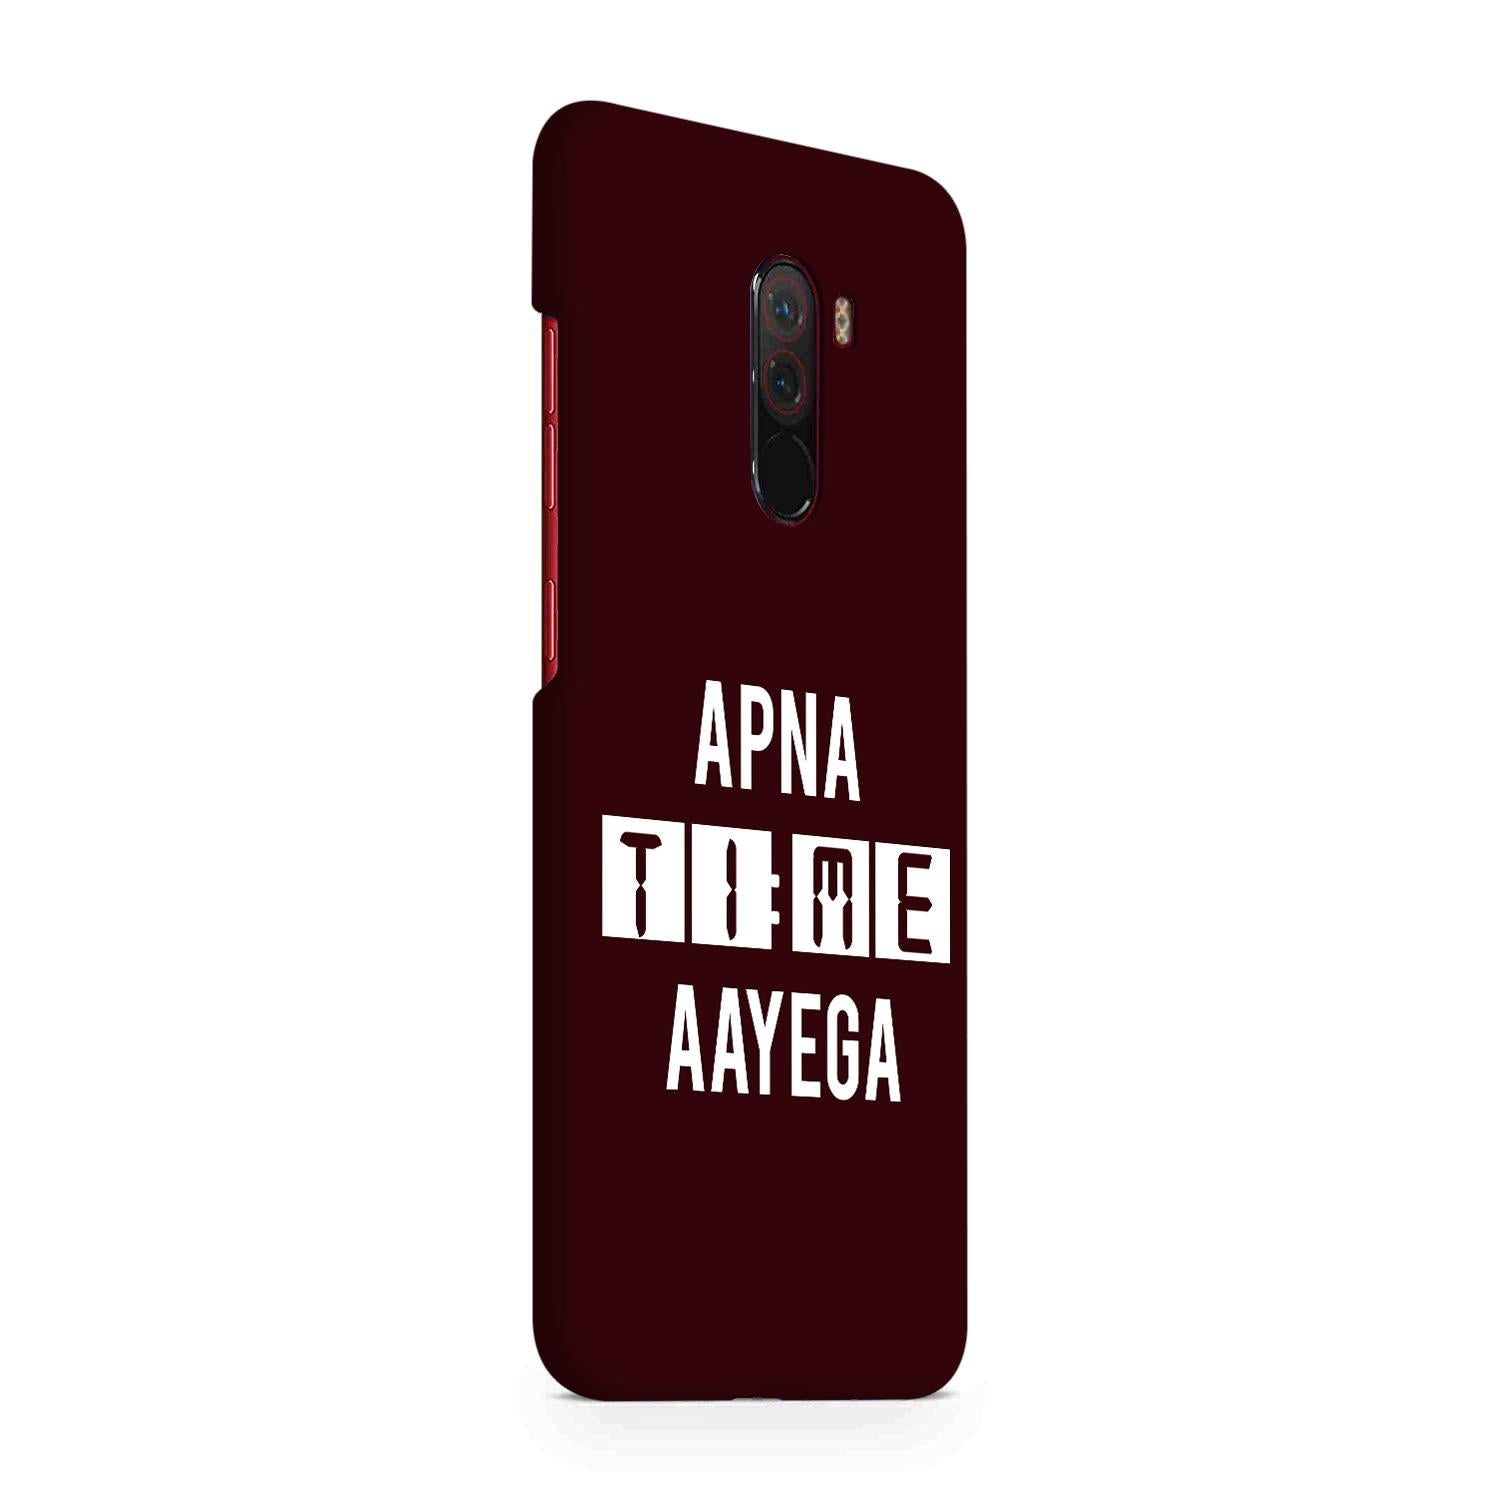 Apna Time Aayega Movie Lovers Xiaomi Poco F1 Mobile Cover Case